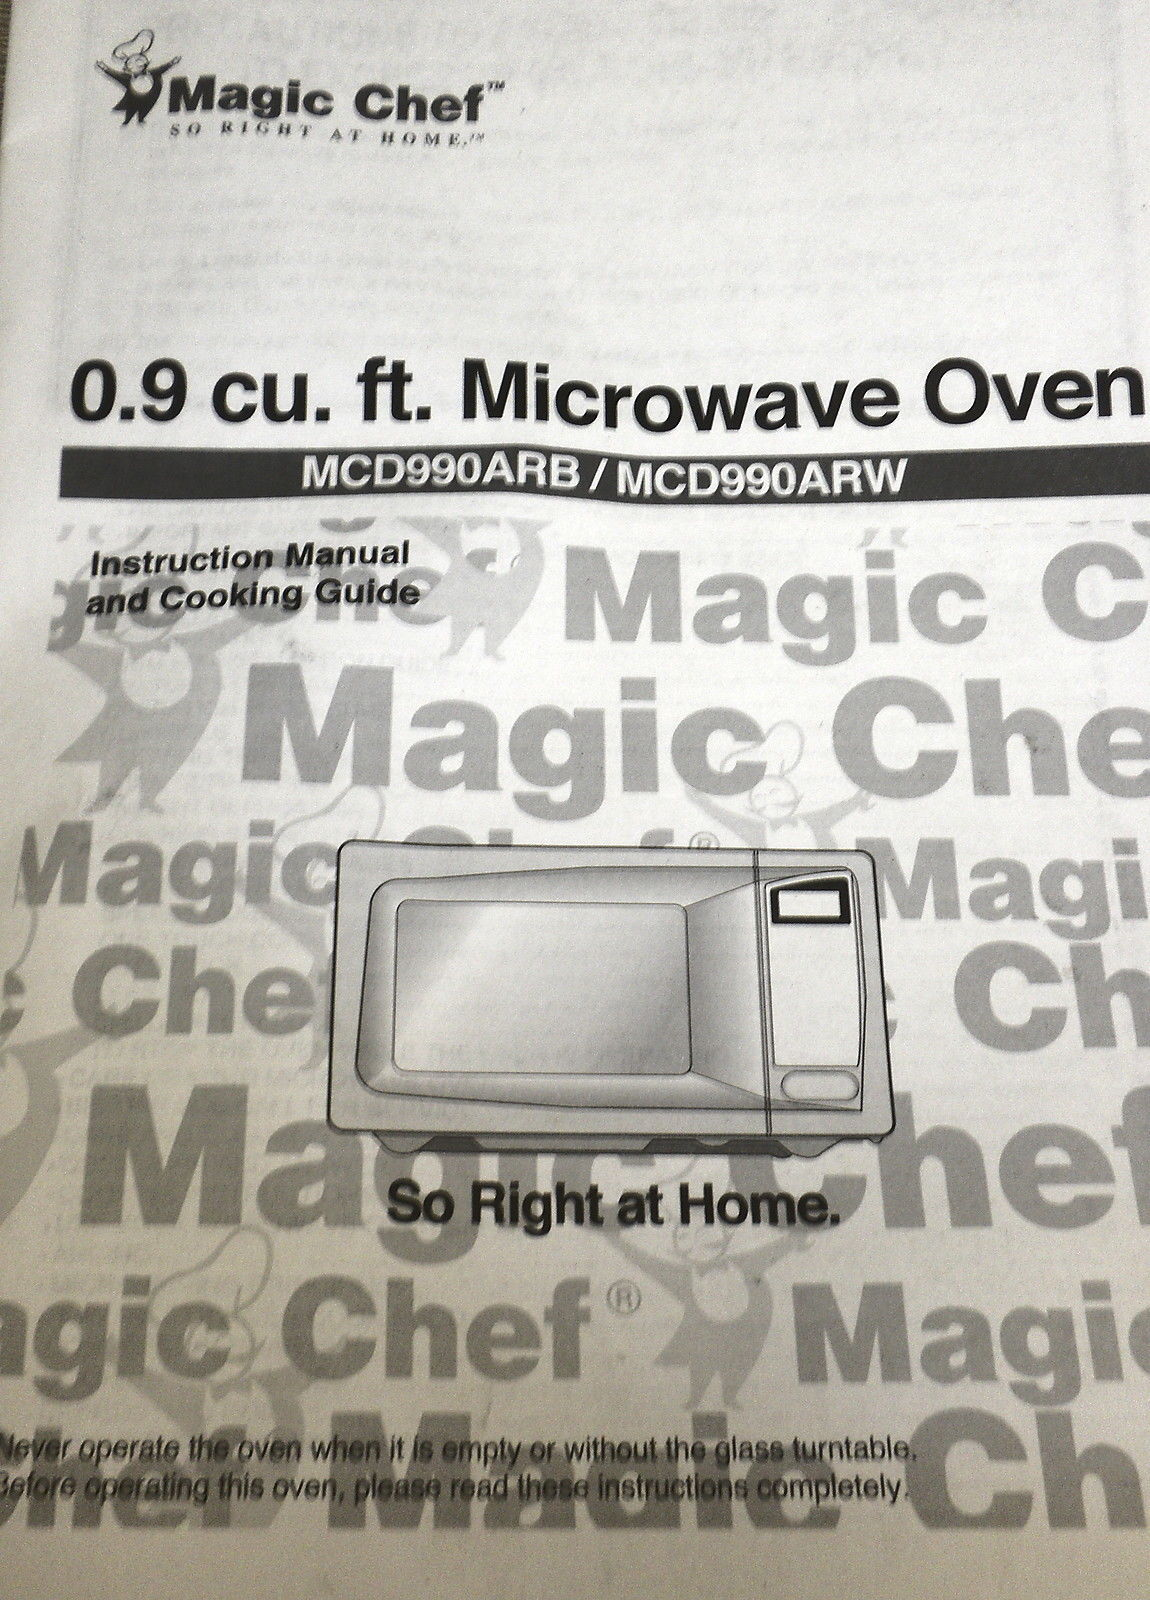 Magic Chef White 7 1/2